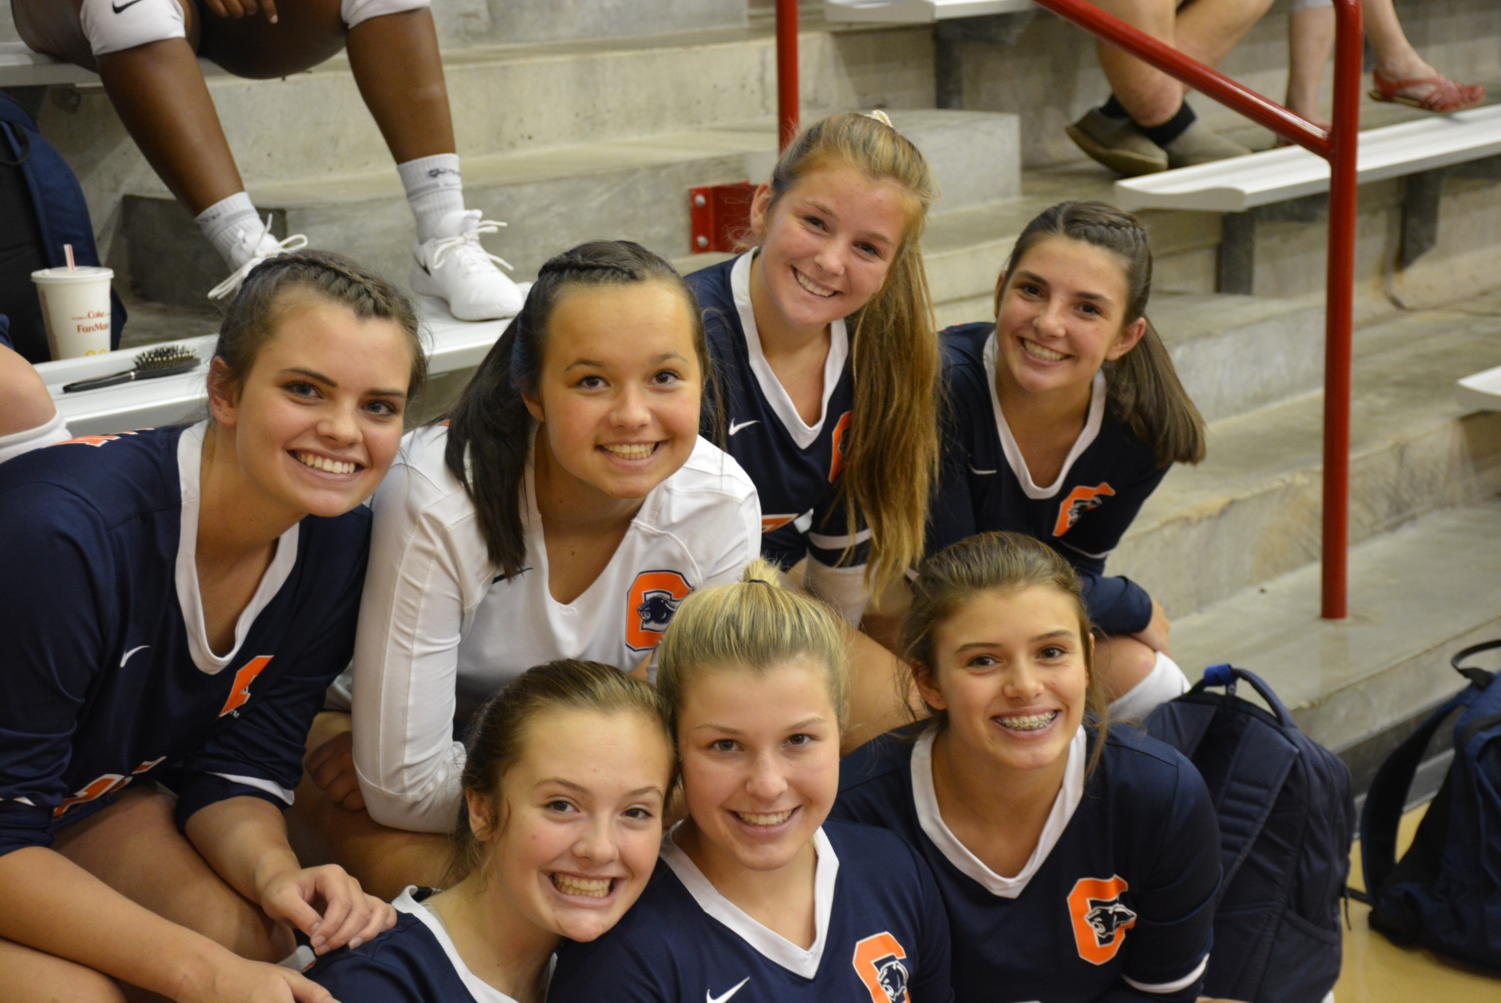 Juniors+Jenna+Moss%2C+Jenna+Calloway%2C+Kailey+Josey%2C+Kylee+Brown+and+Caroline+Grigg+with+sophomores+Emma+Wagner+and+Rylan+Snead.+